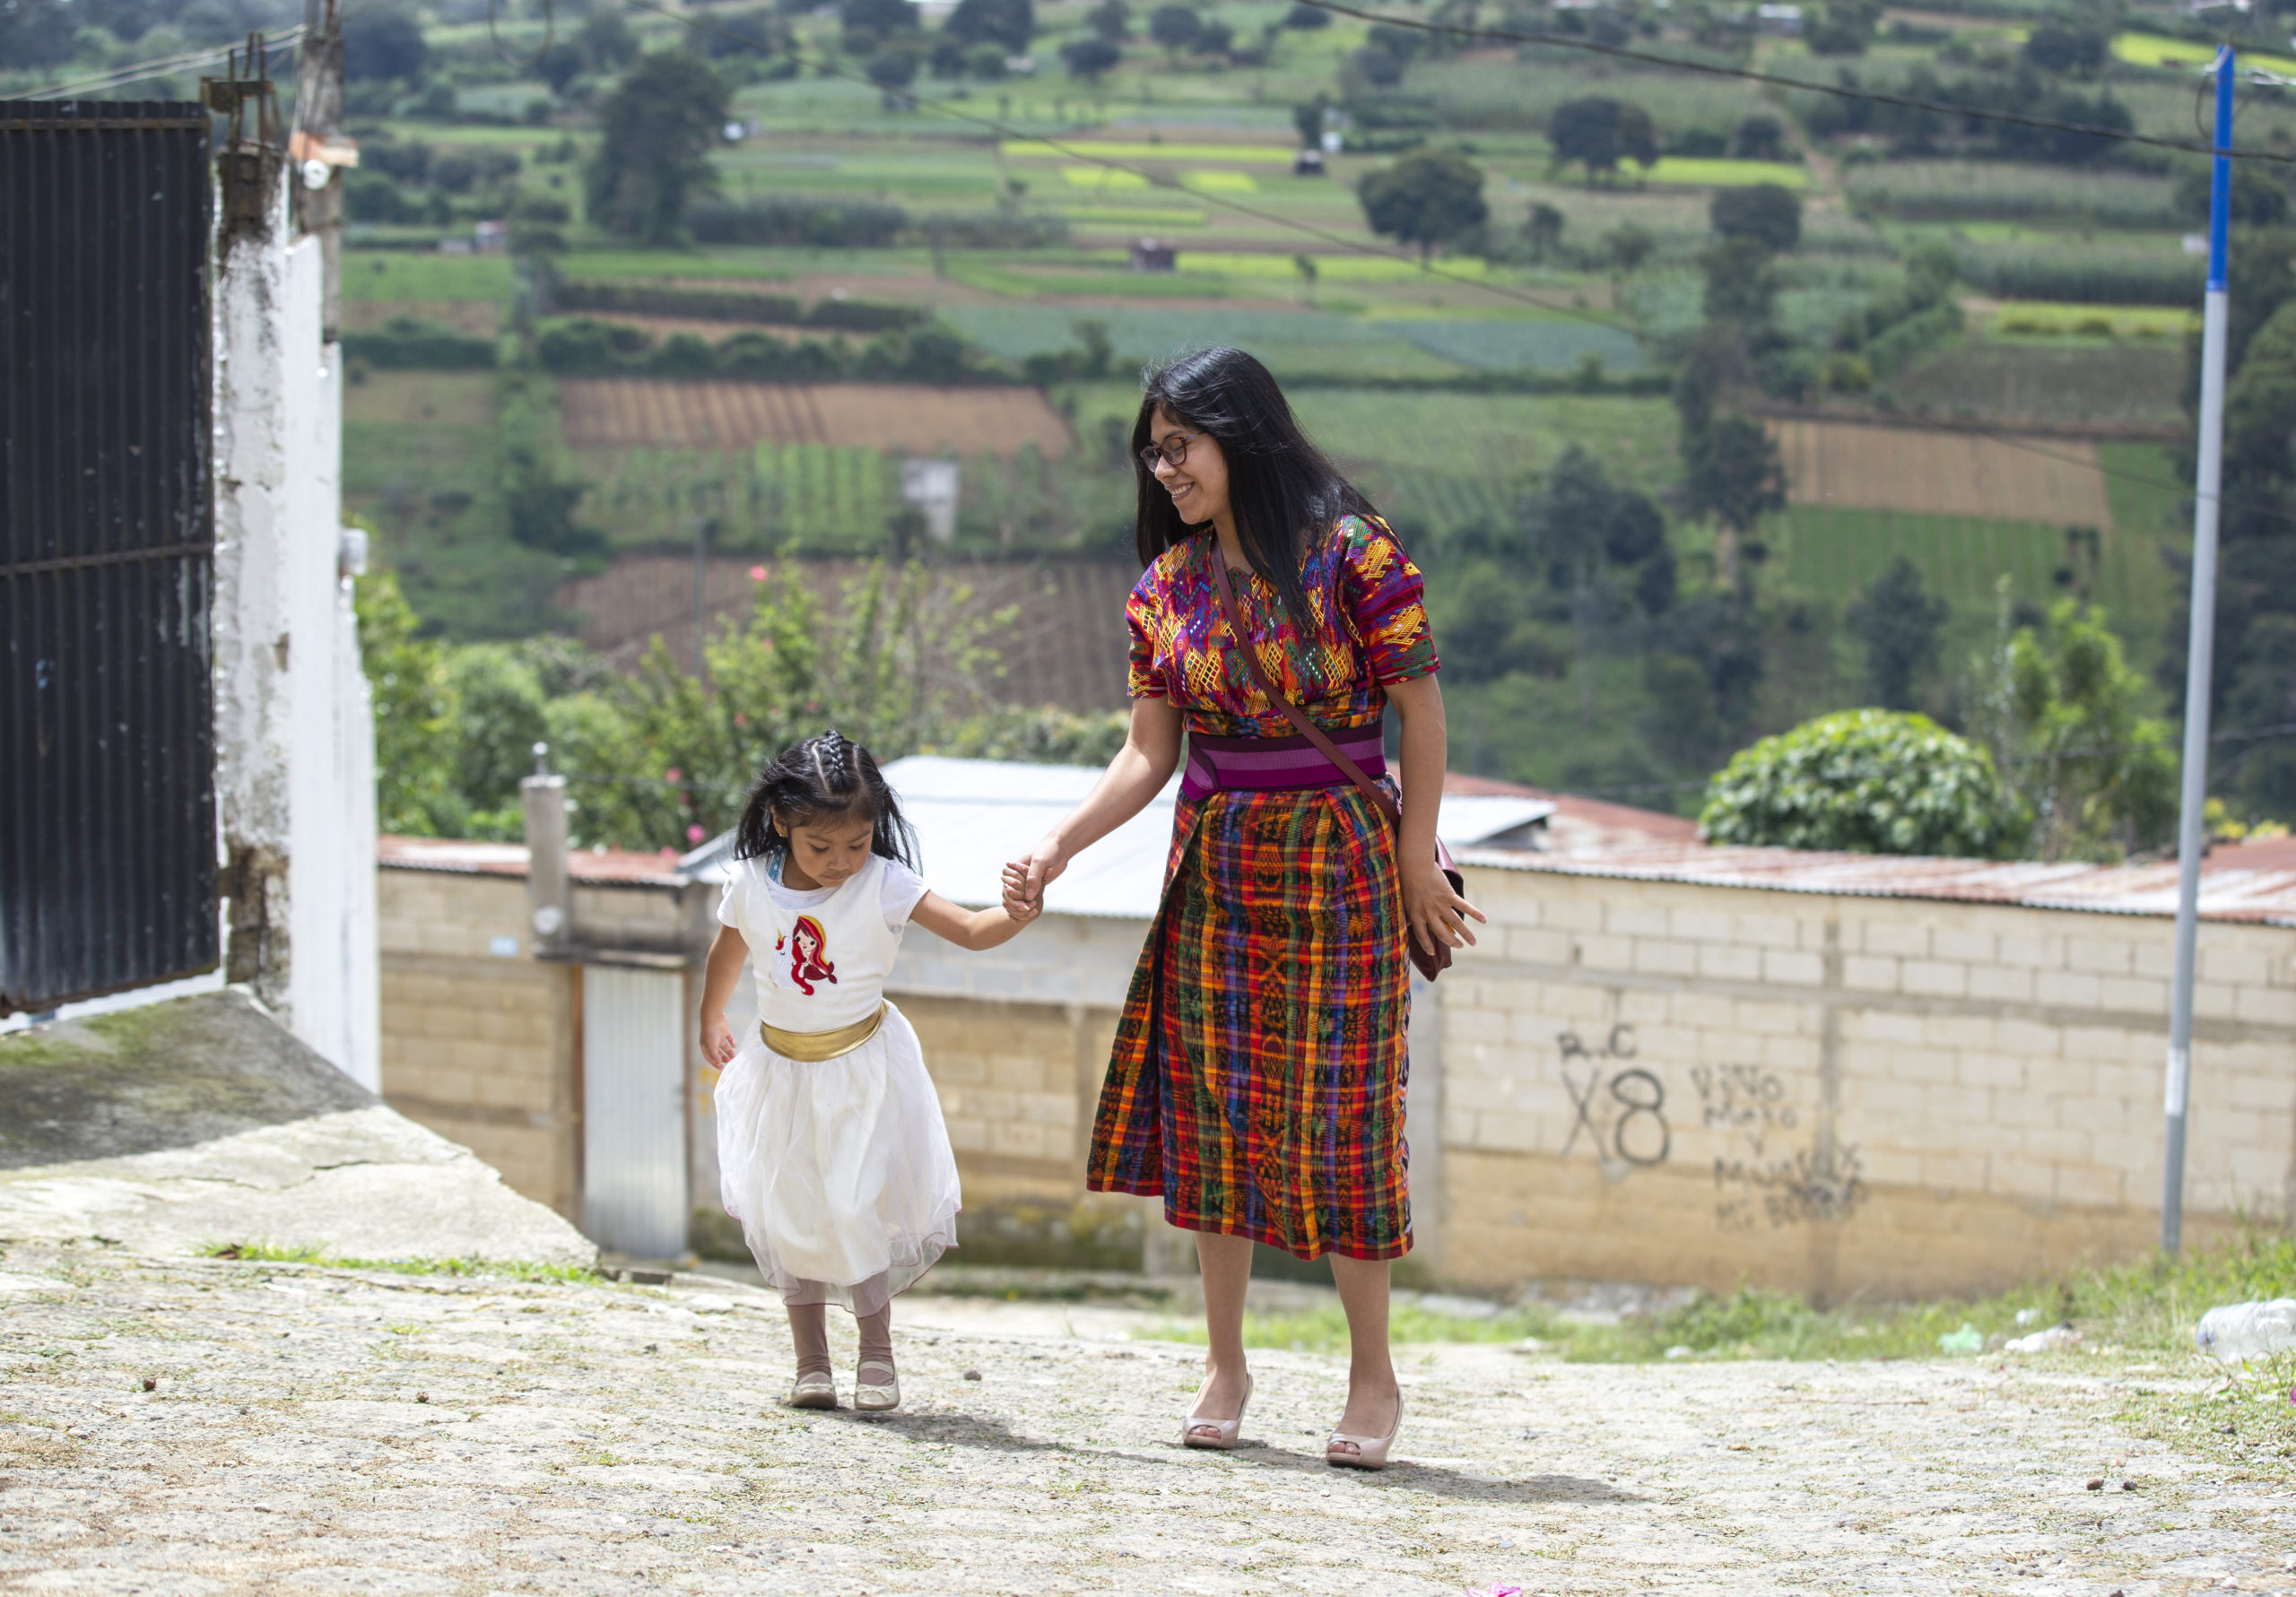 Ancela Ortiz holds her young daughters hand with pastures in the background.